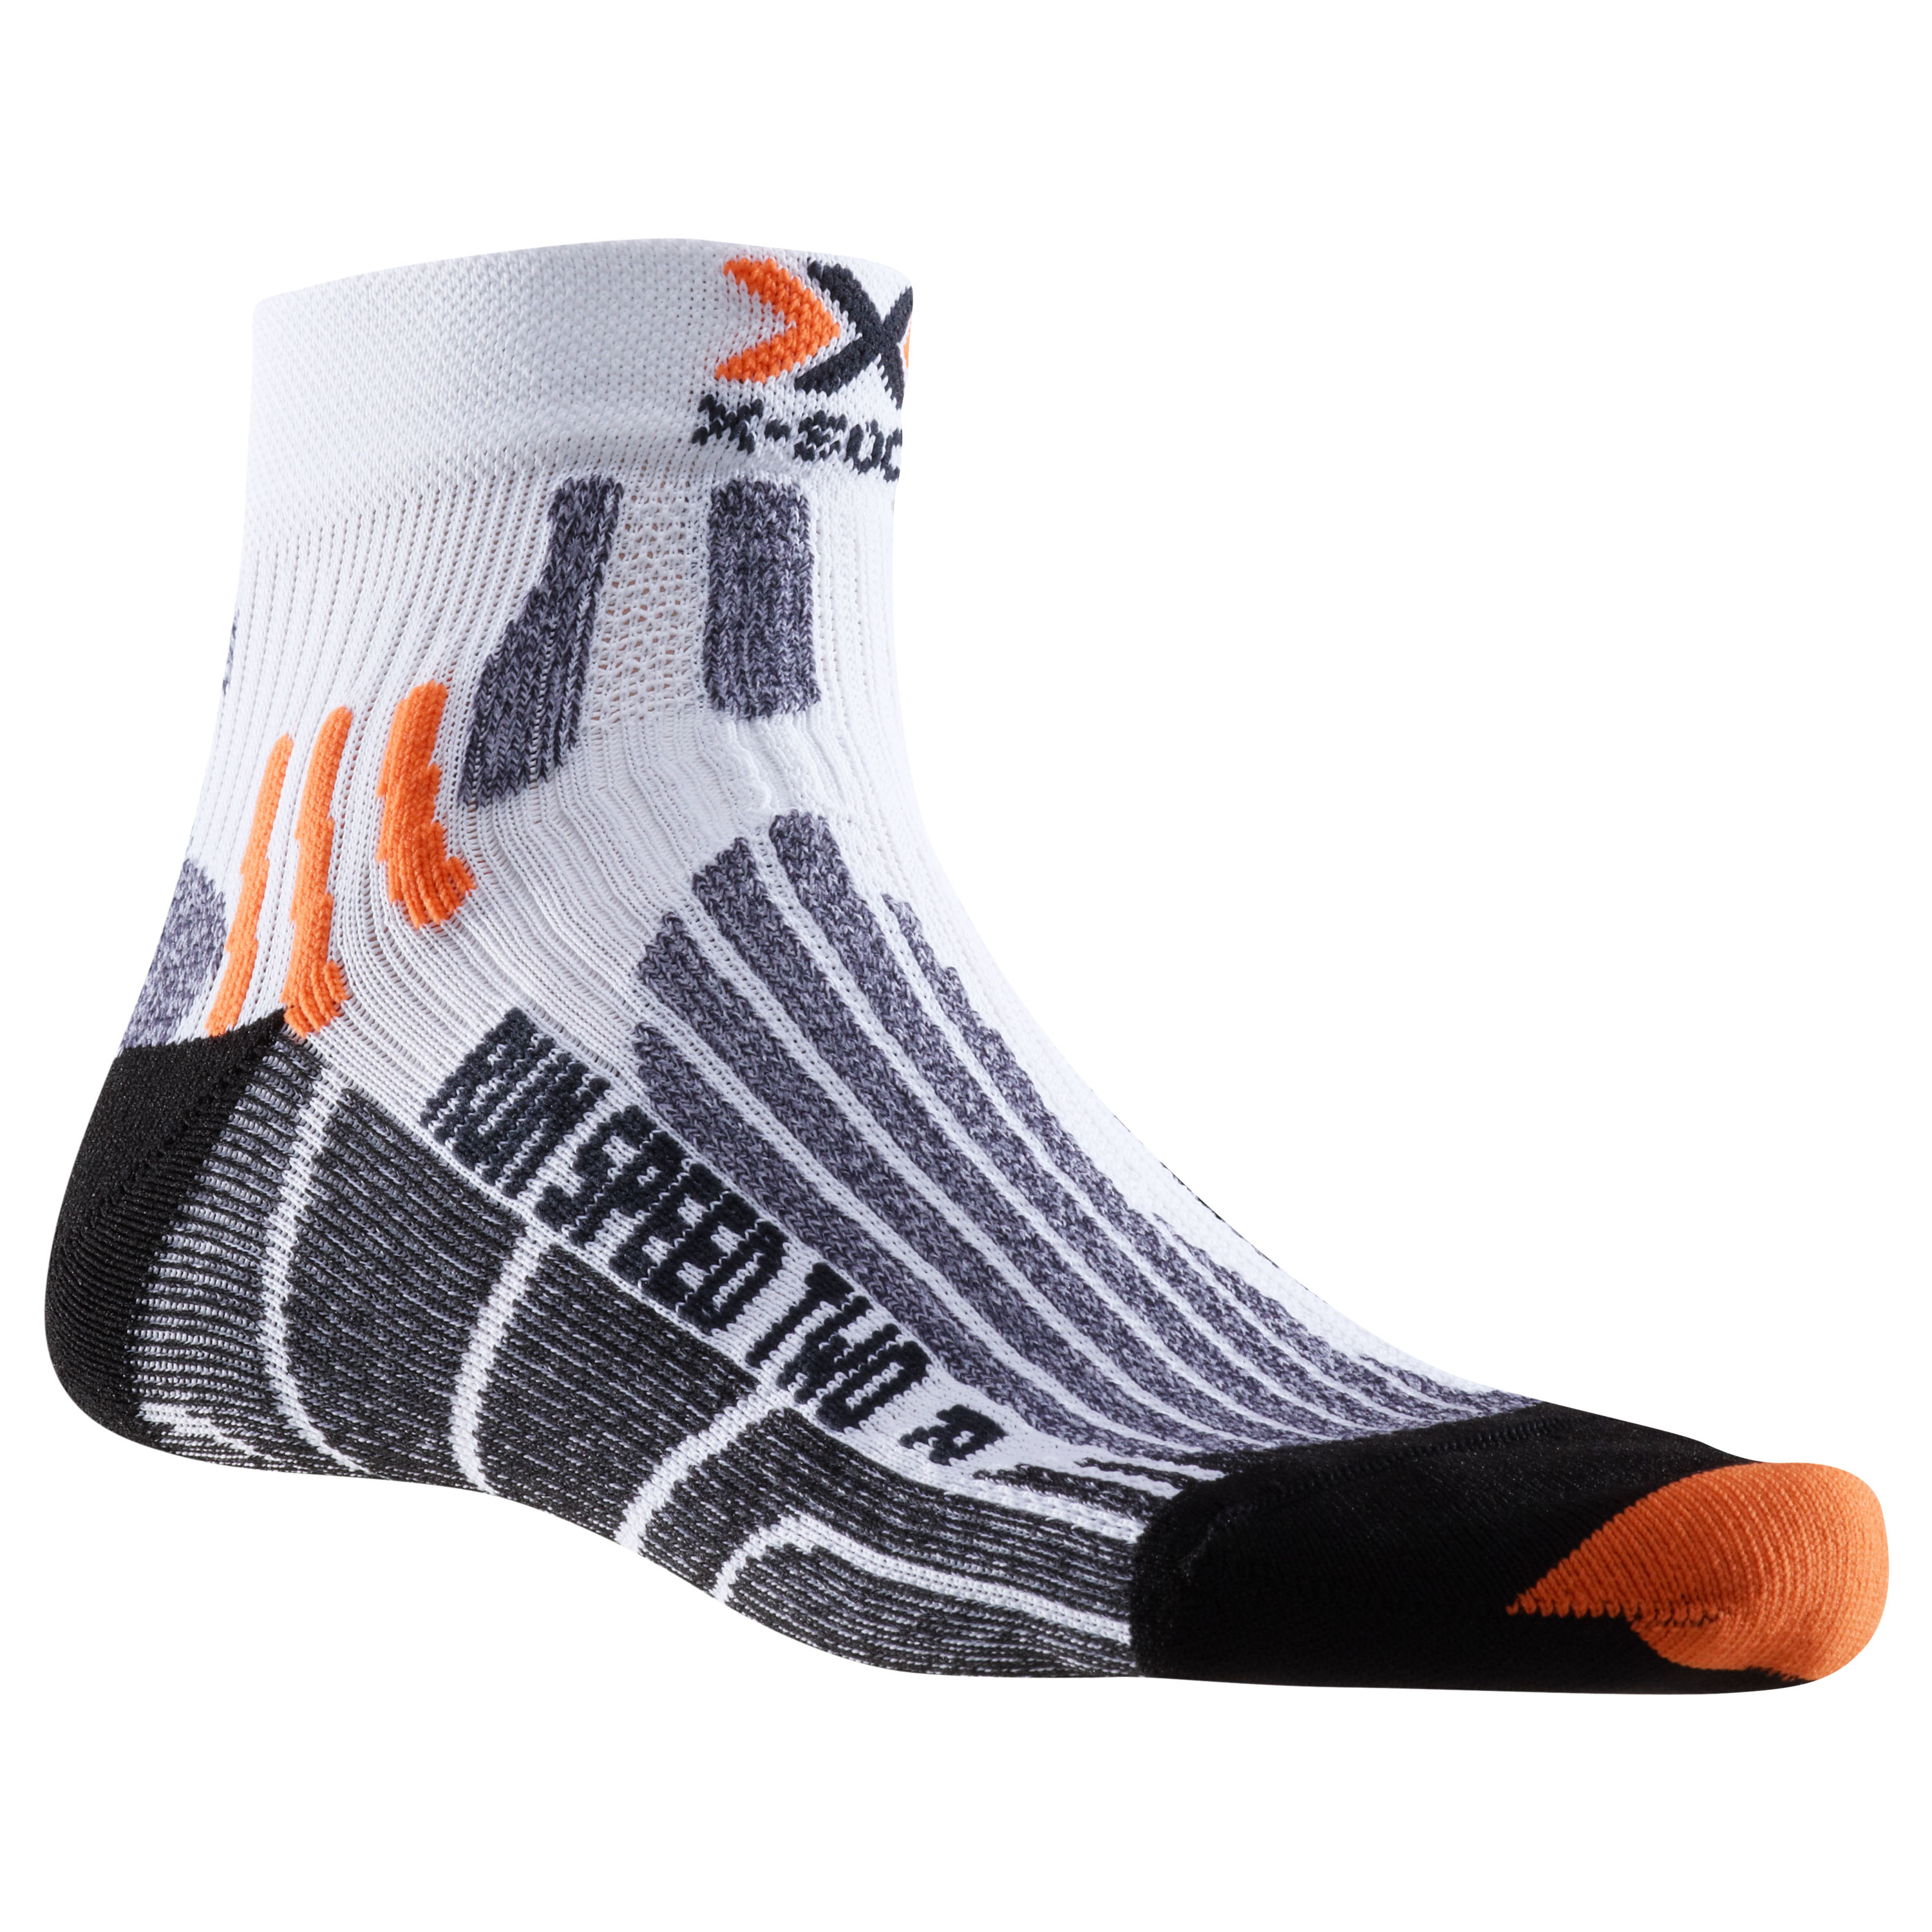 X-Socks Socken Run Speed Two weiß schwarz